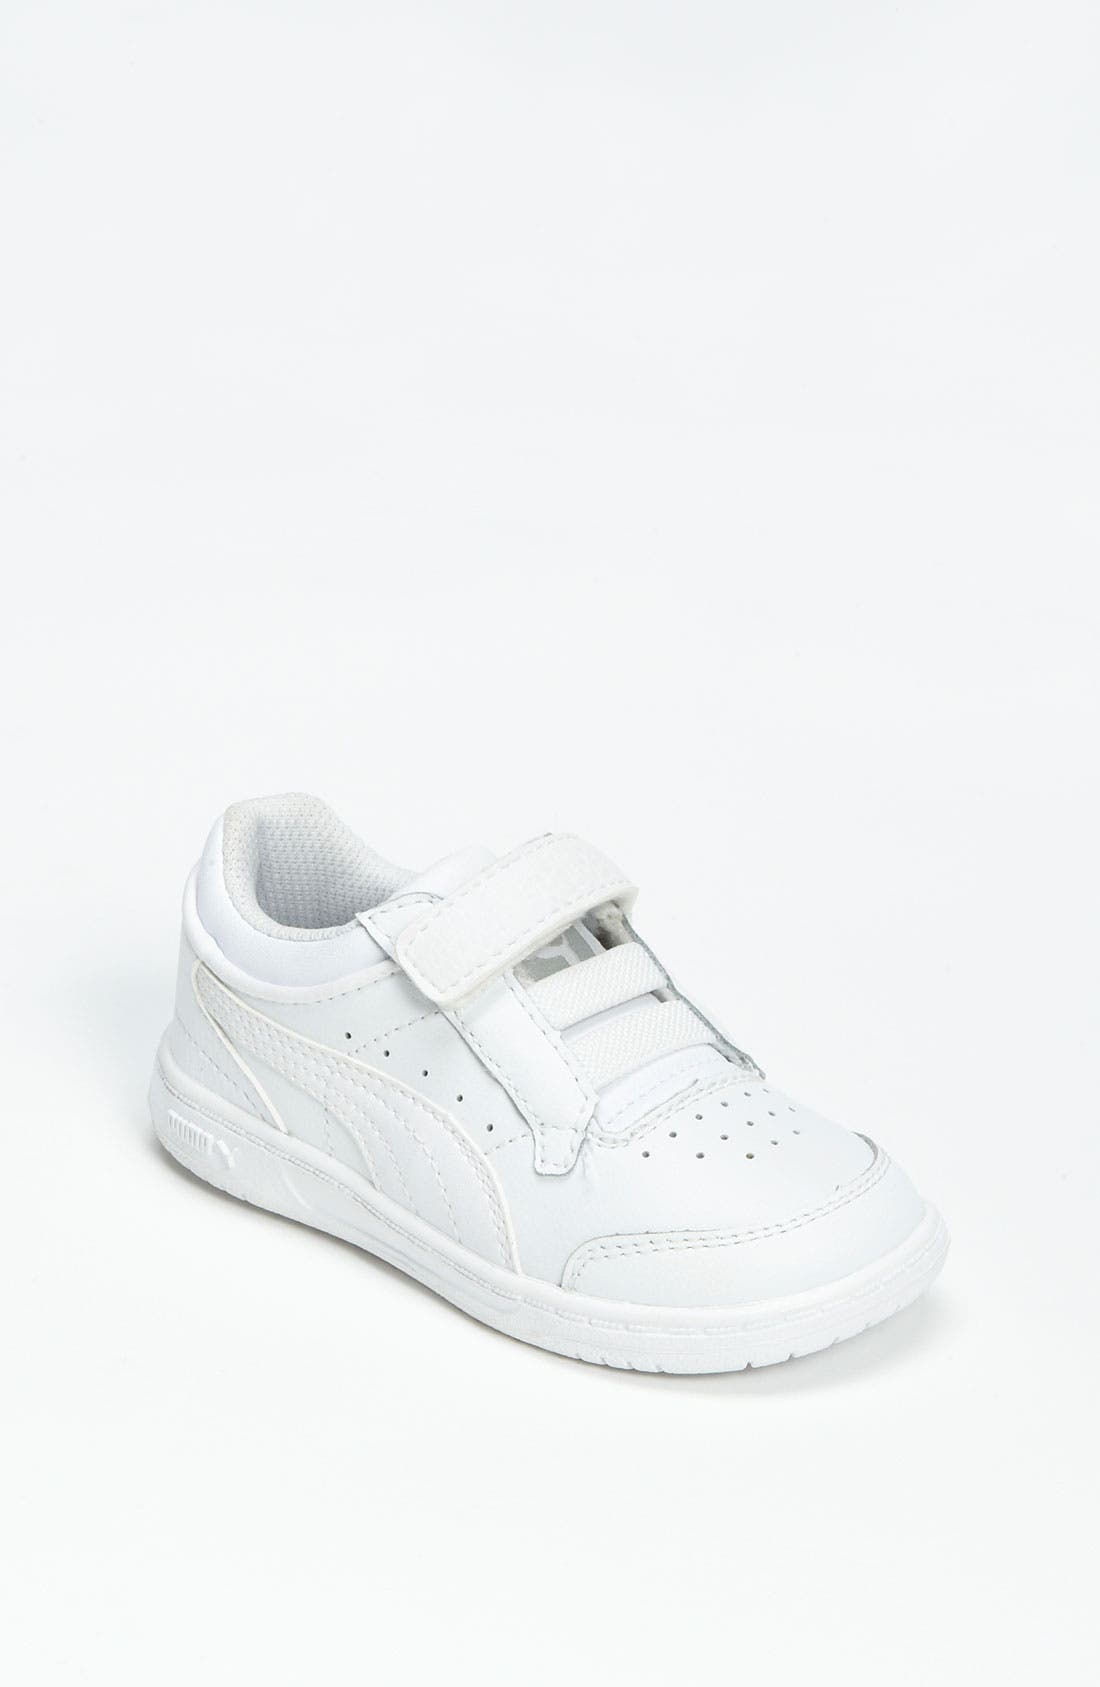 Main Image - PUMA 'Full Court Lo' Sneaker (Baby, Walker, Toddler & Little Kid)